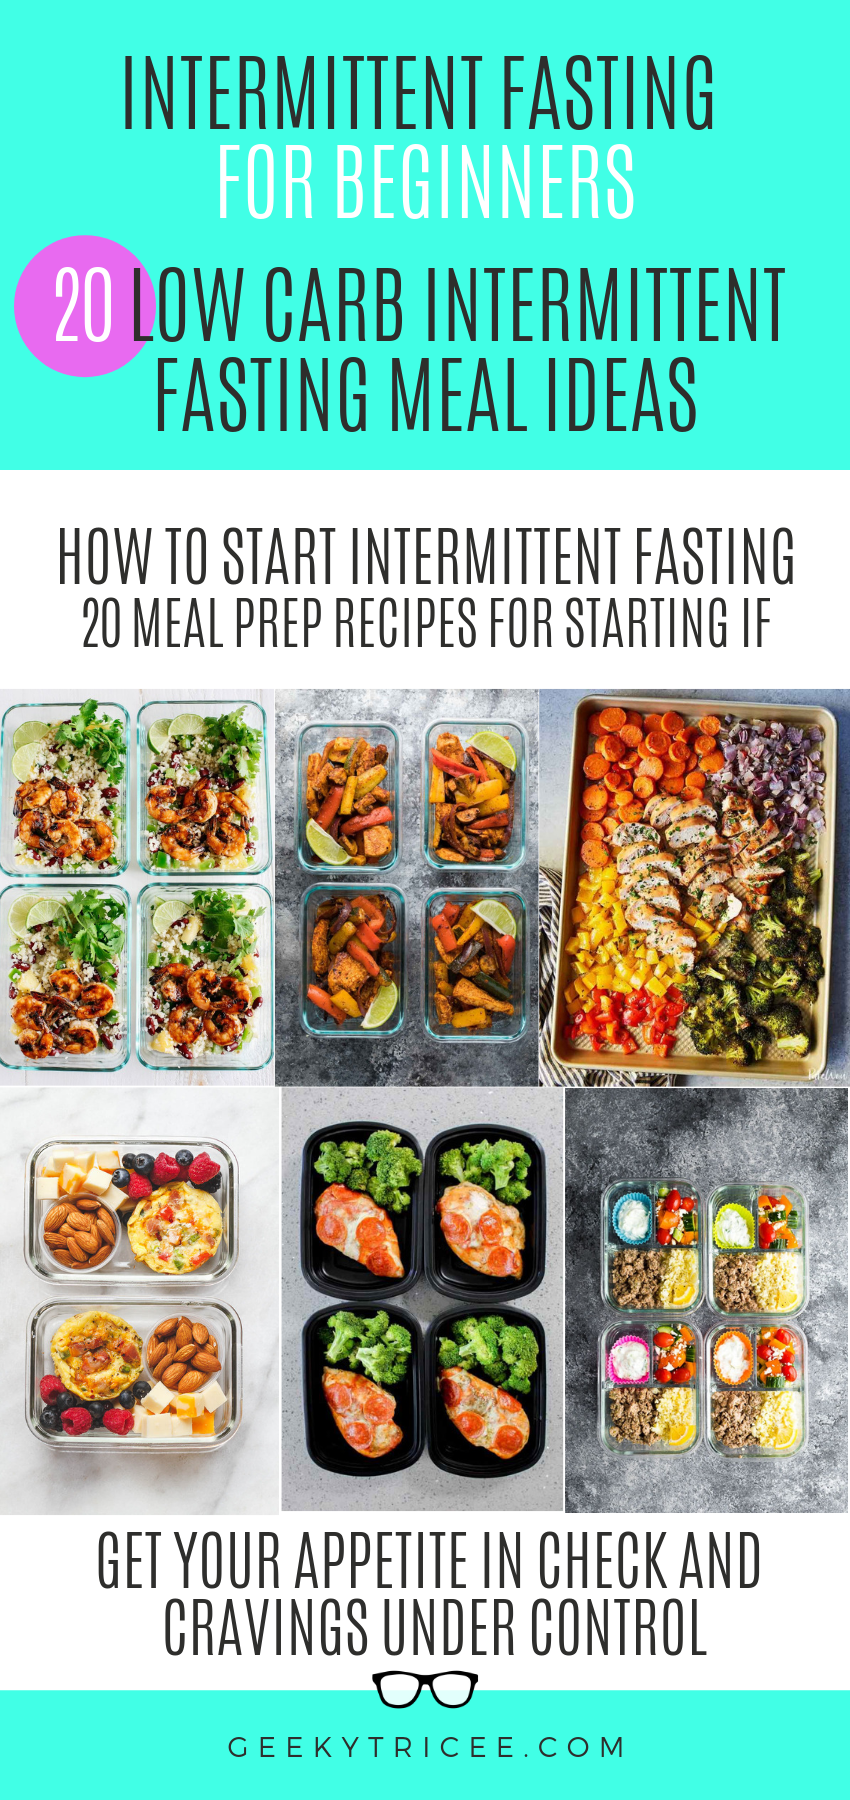 20 Keto Meal Prep Ideas For Starting Intermittent Fasting